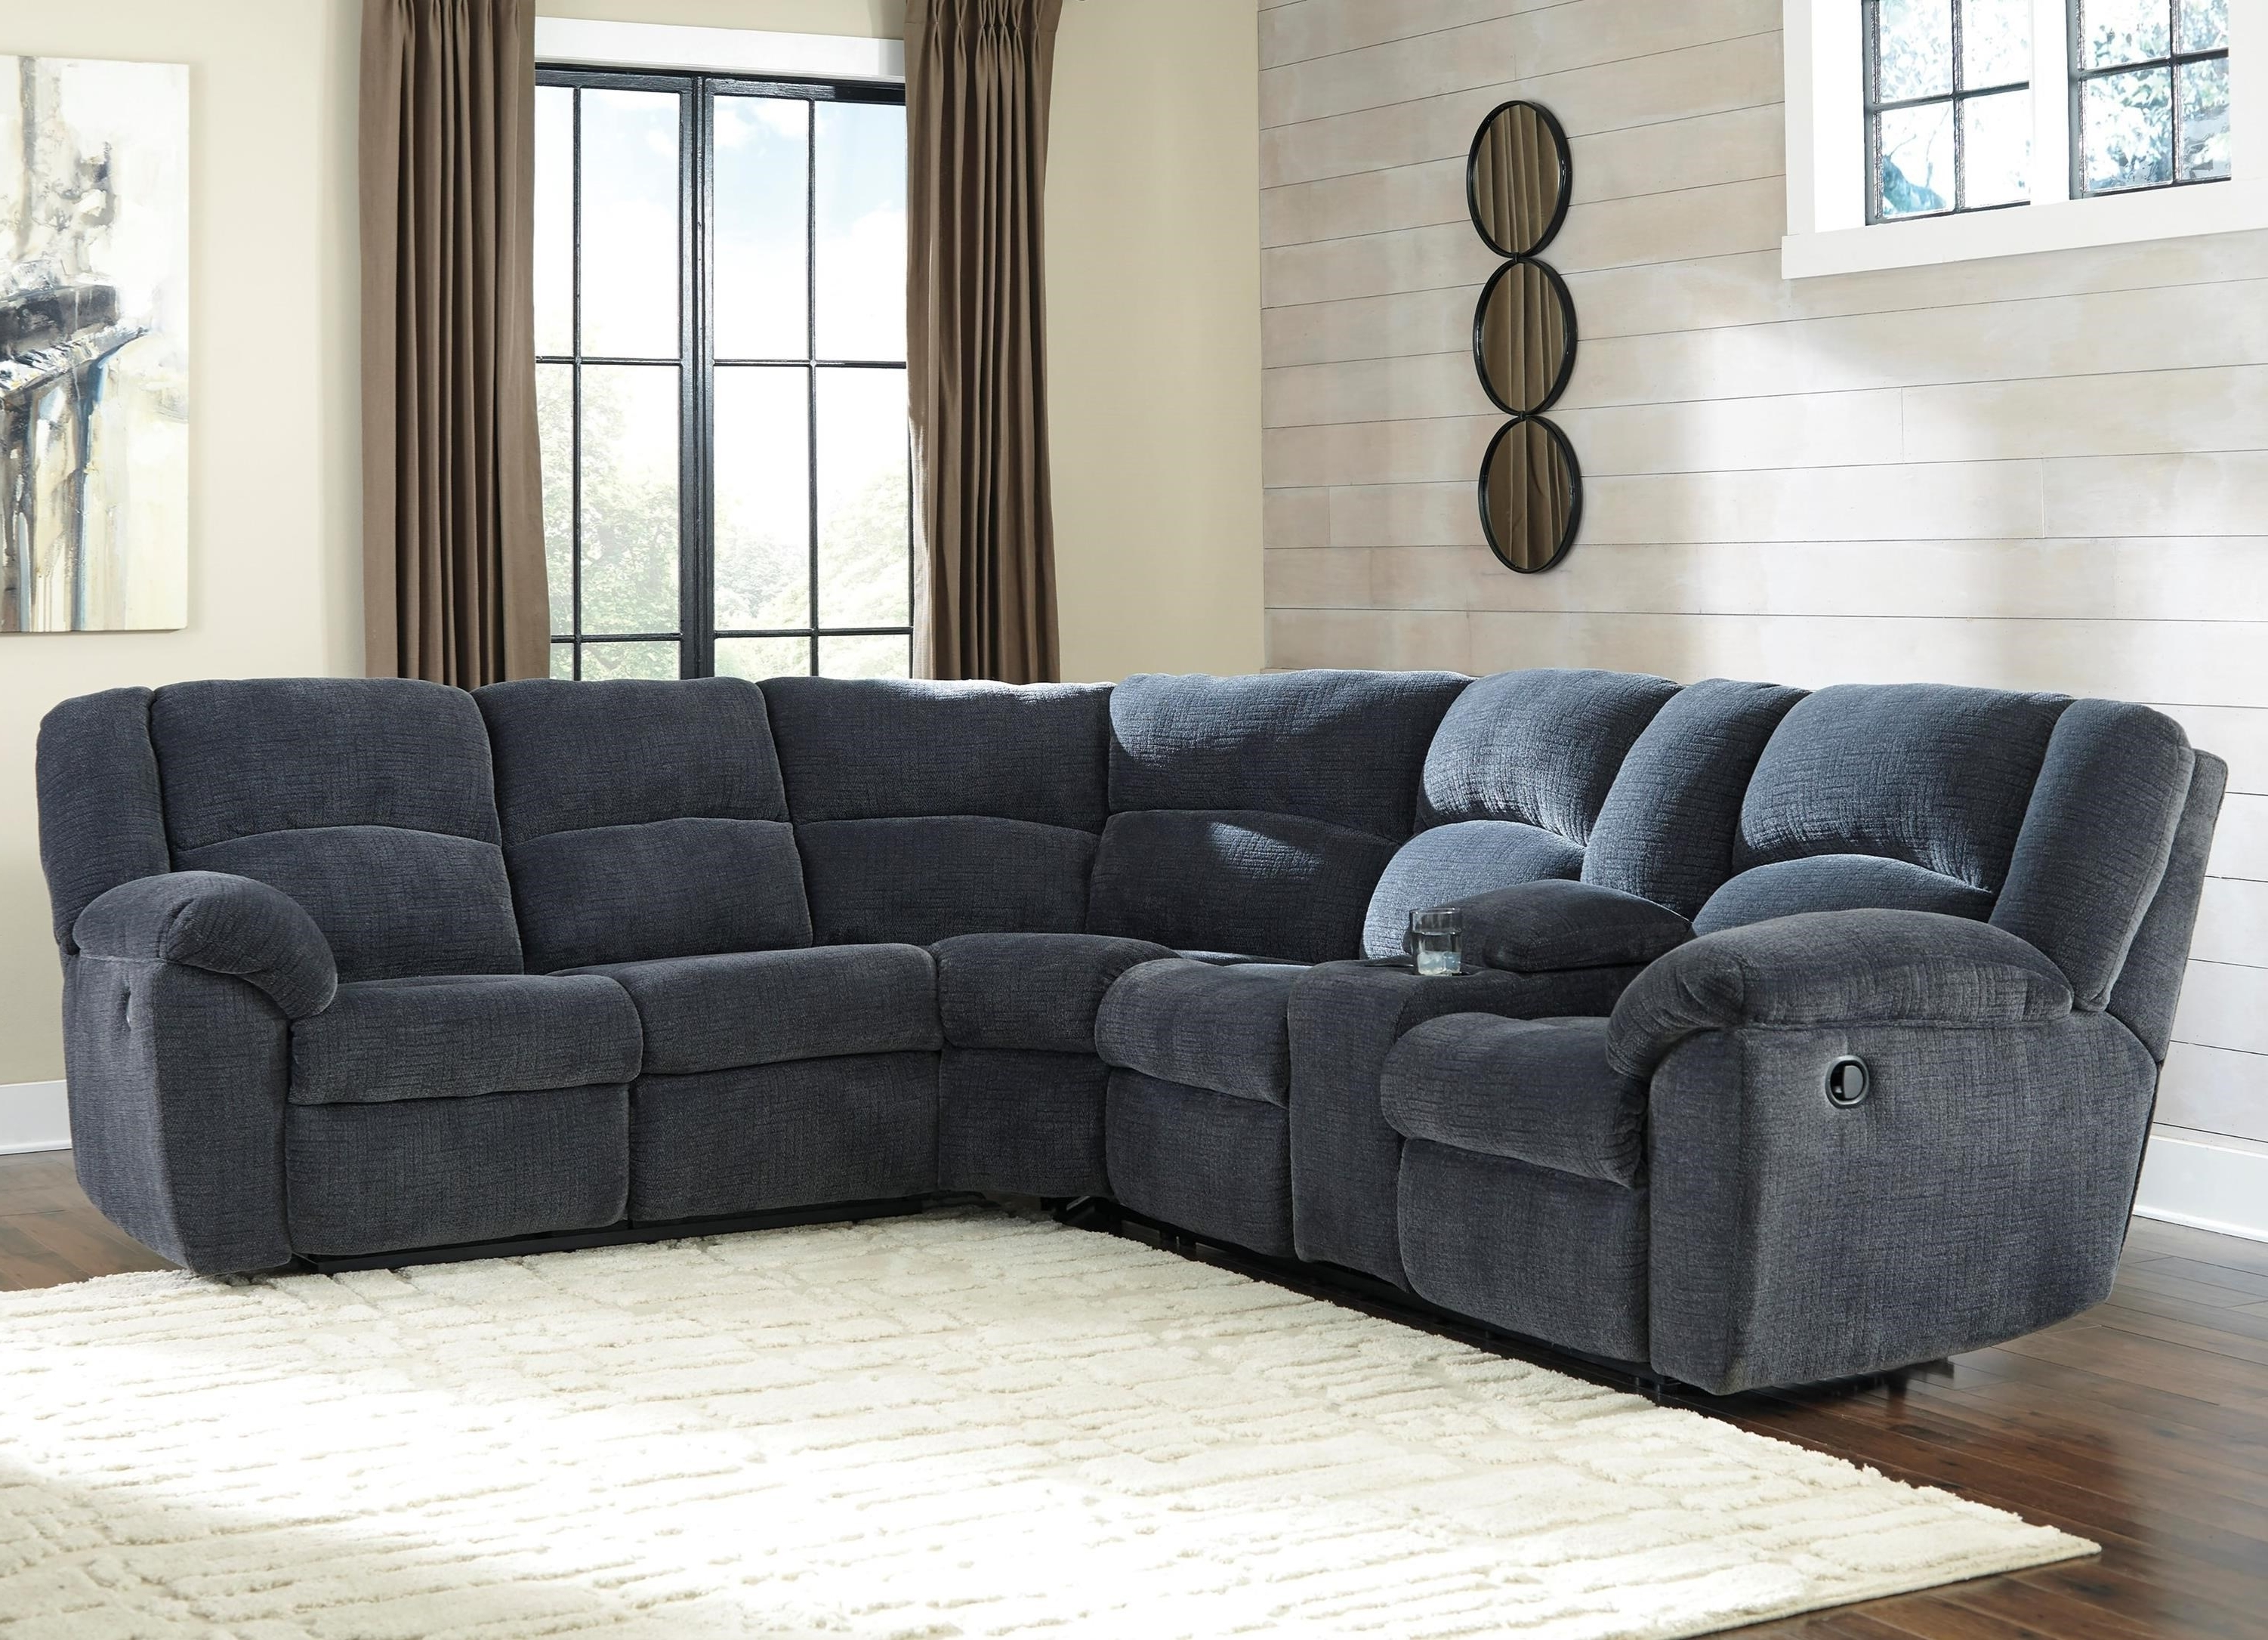 Ashley Furniture Regarding Greenville Nc Sectional Sofas (View 10 of 20)